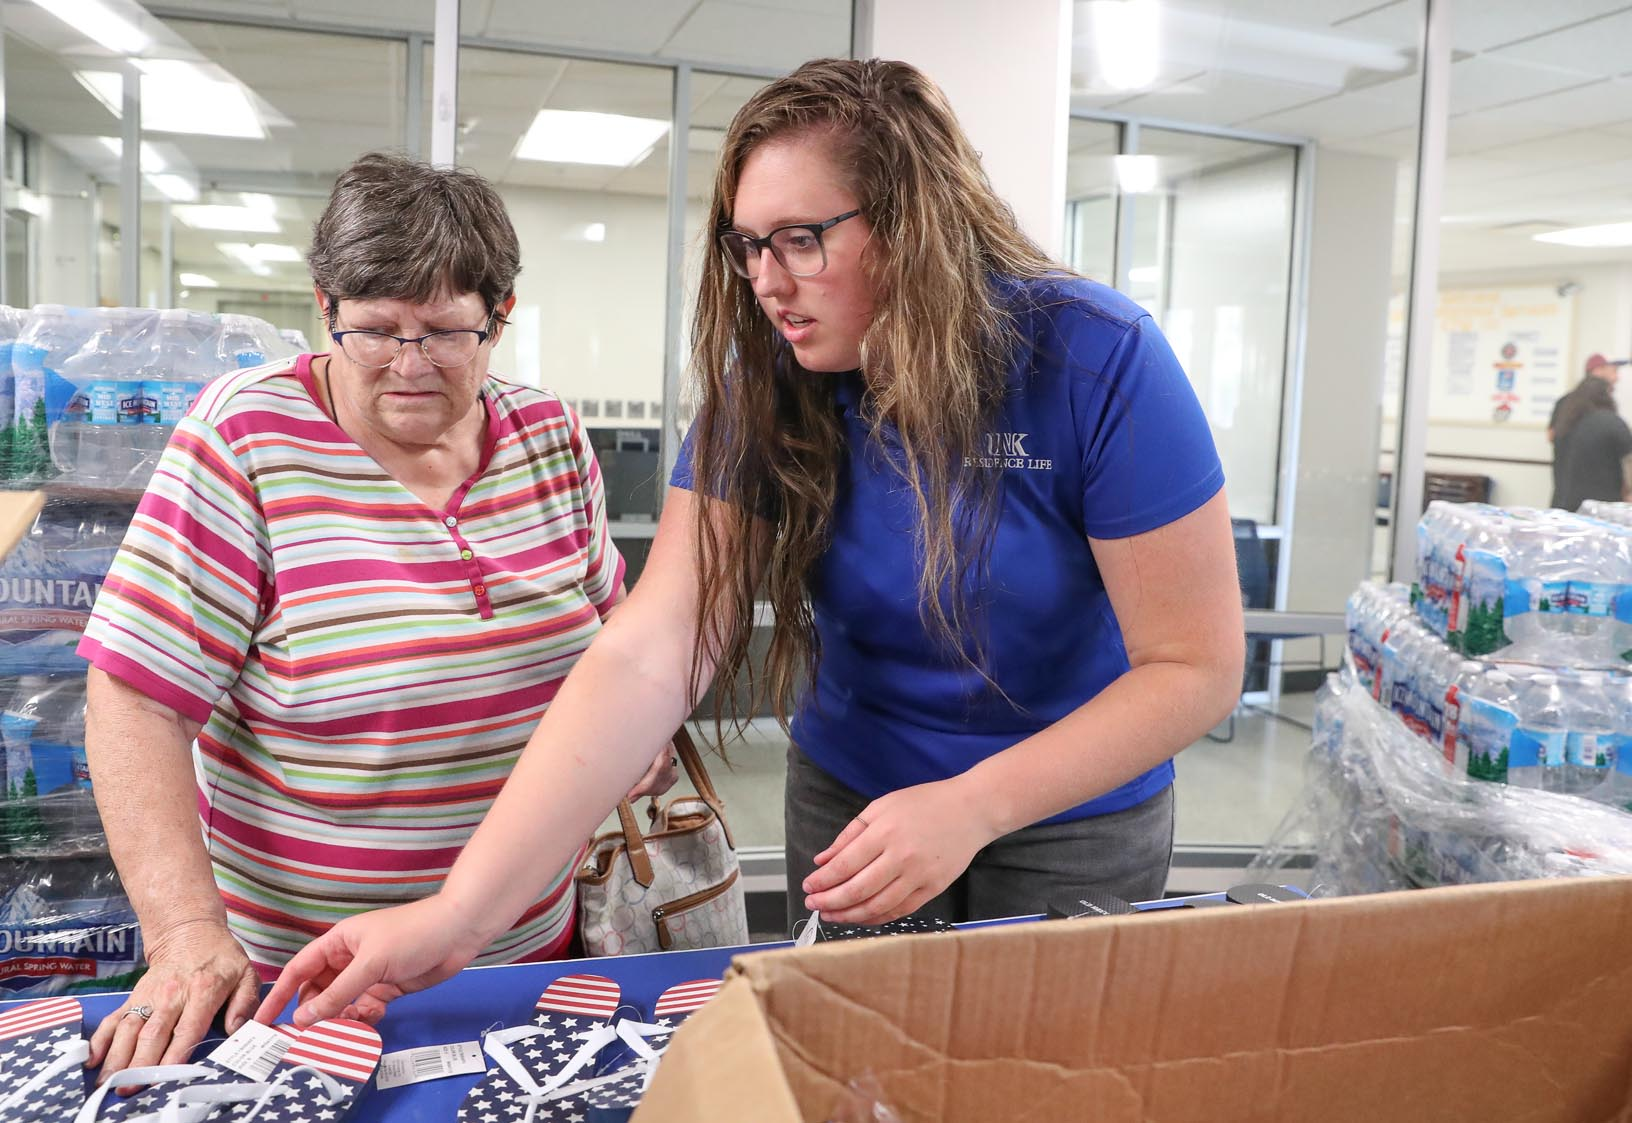 Stacea Pauli with UNK's Office of Residence Life, right, assists a woman impacted by Tuesday's flooding in the Kearney area. UNK opened two residence halls to provide housing for flood evacuees. (Photo by Corbey R. Dorsey, UNK Communications)